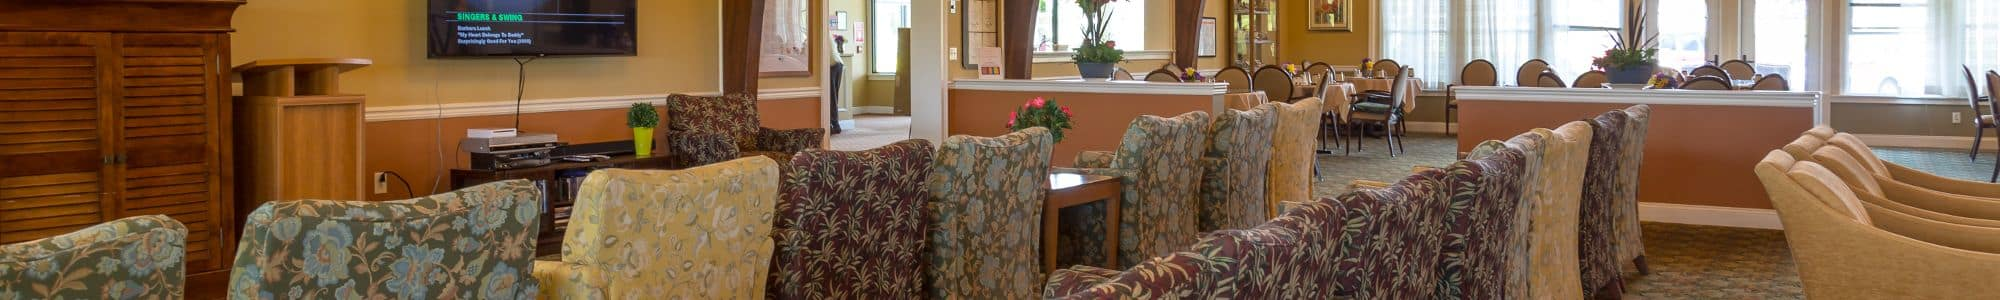 Request a brochure | Bentley Assisted Living at Branchville